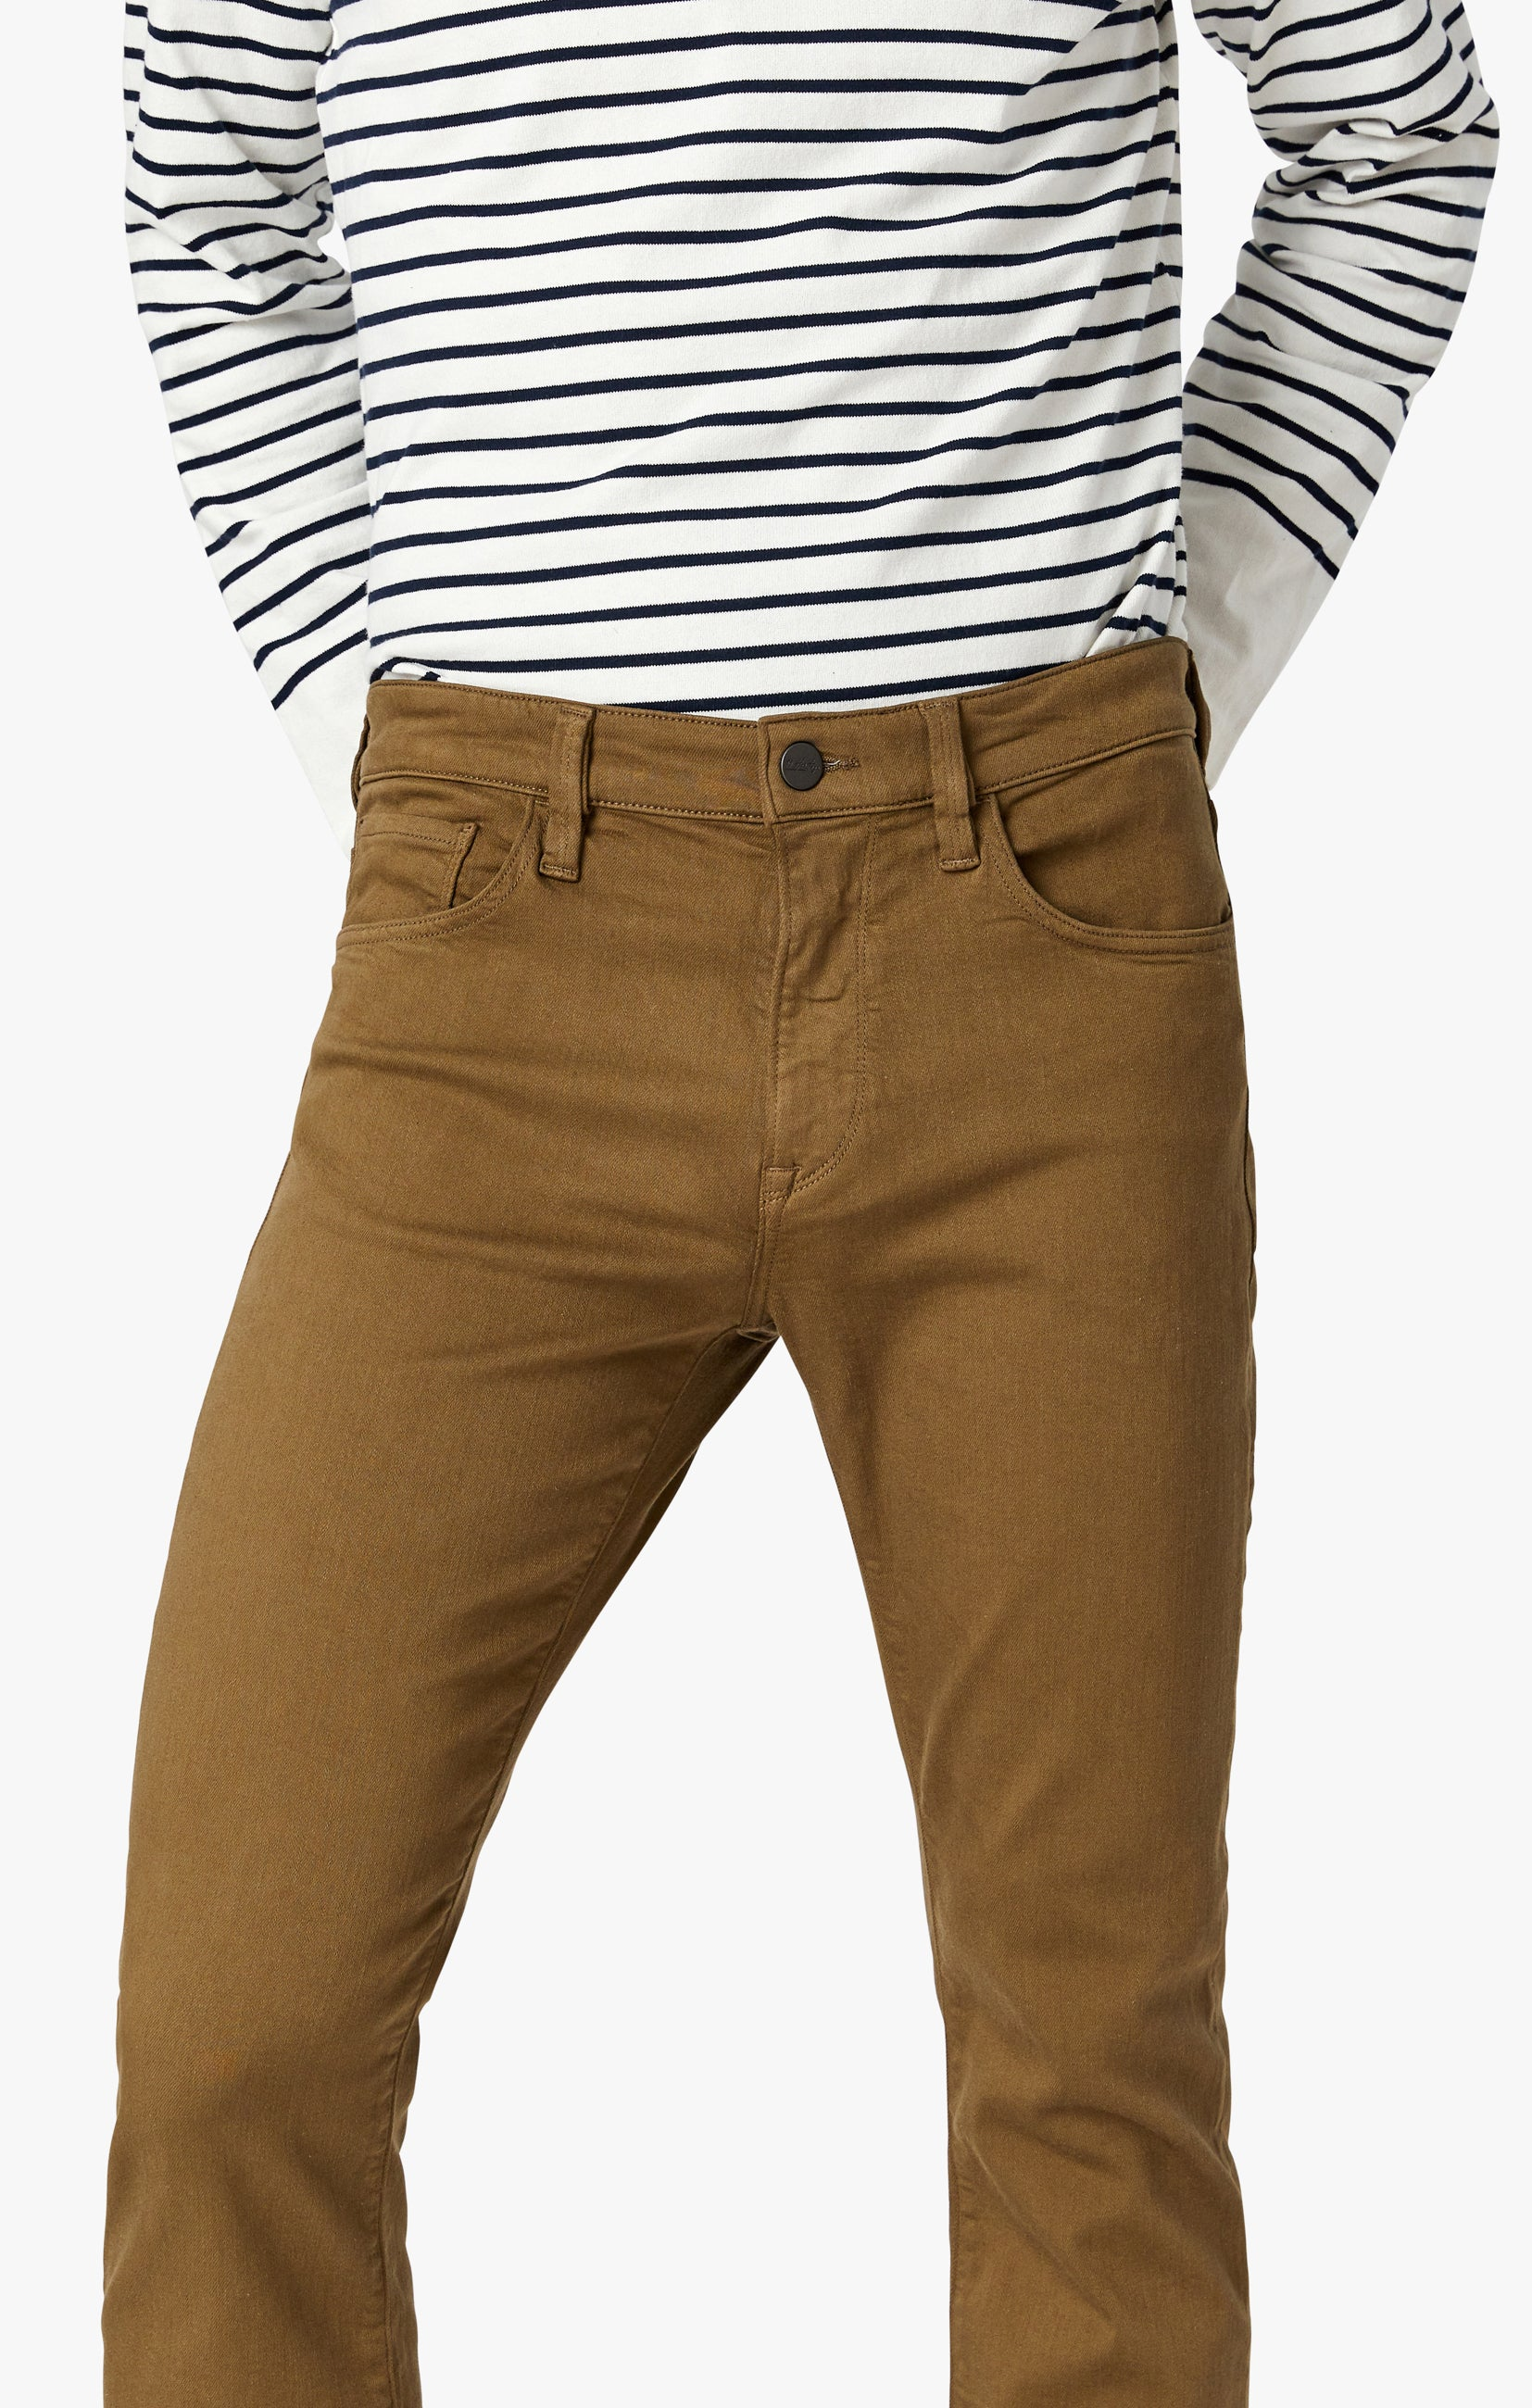 Cool Tapered Leg Pants In Tobacco Comfort Image 7